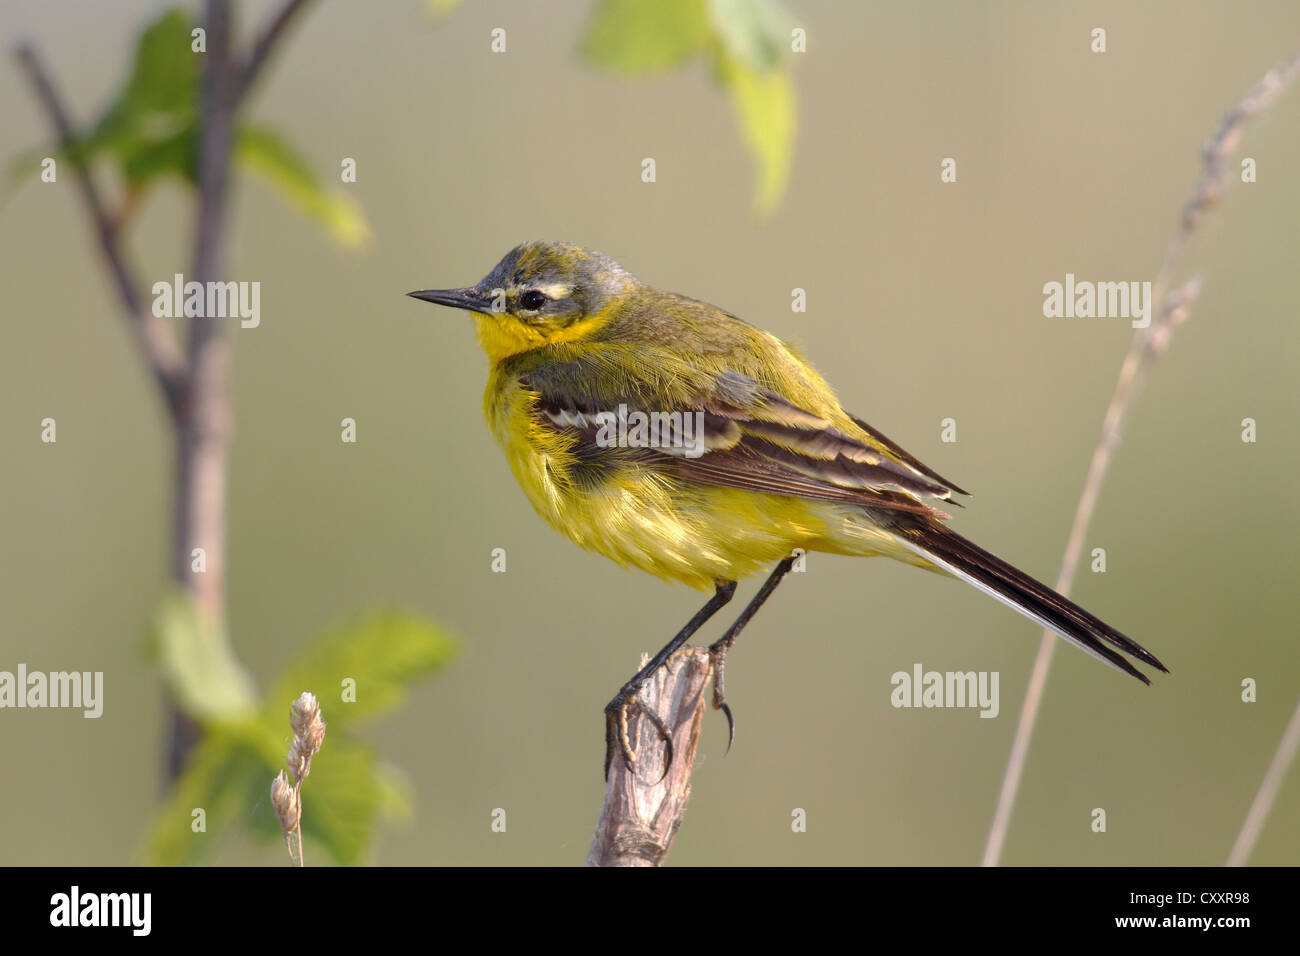 Yellow wagtail (Motacilla flava), male singing, perched on its song post, Lake Neusiedl, Burgenland, Austria, Europe Stock Photo